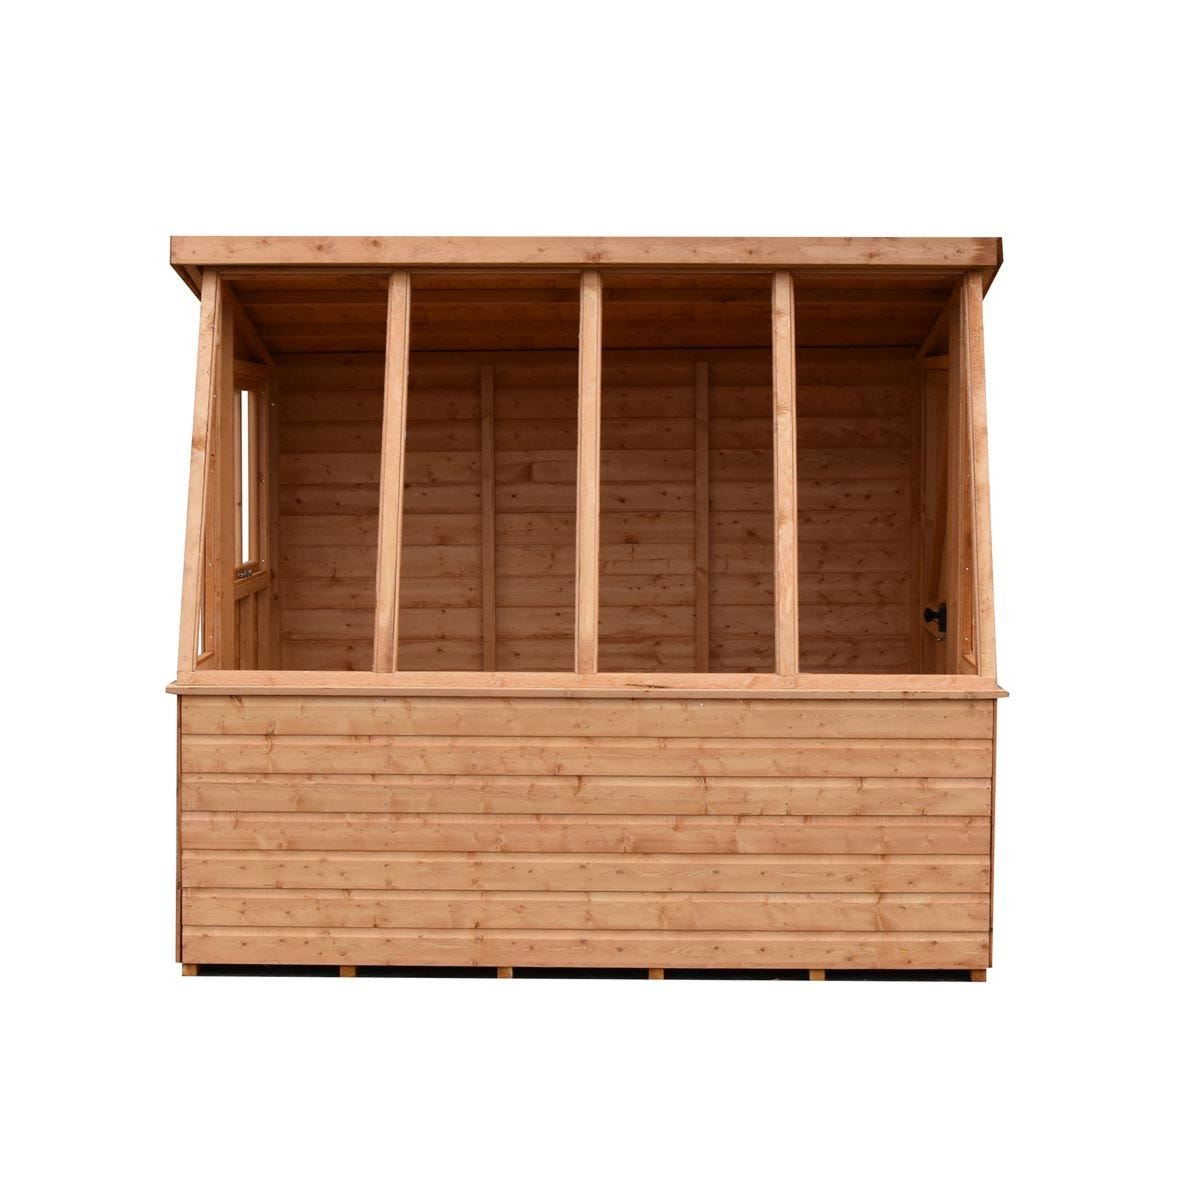 Shire Iceni Left-Hand Door Potting Shed - 8ft x 6ft